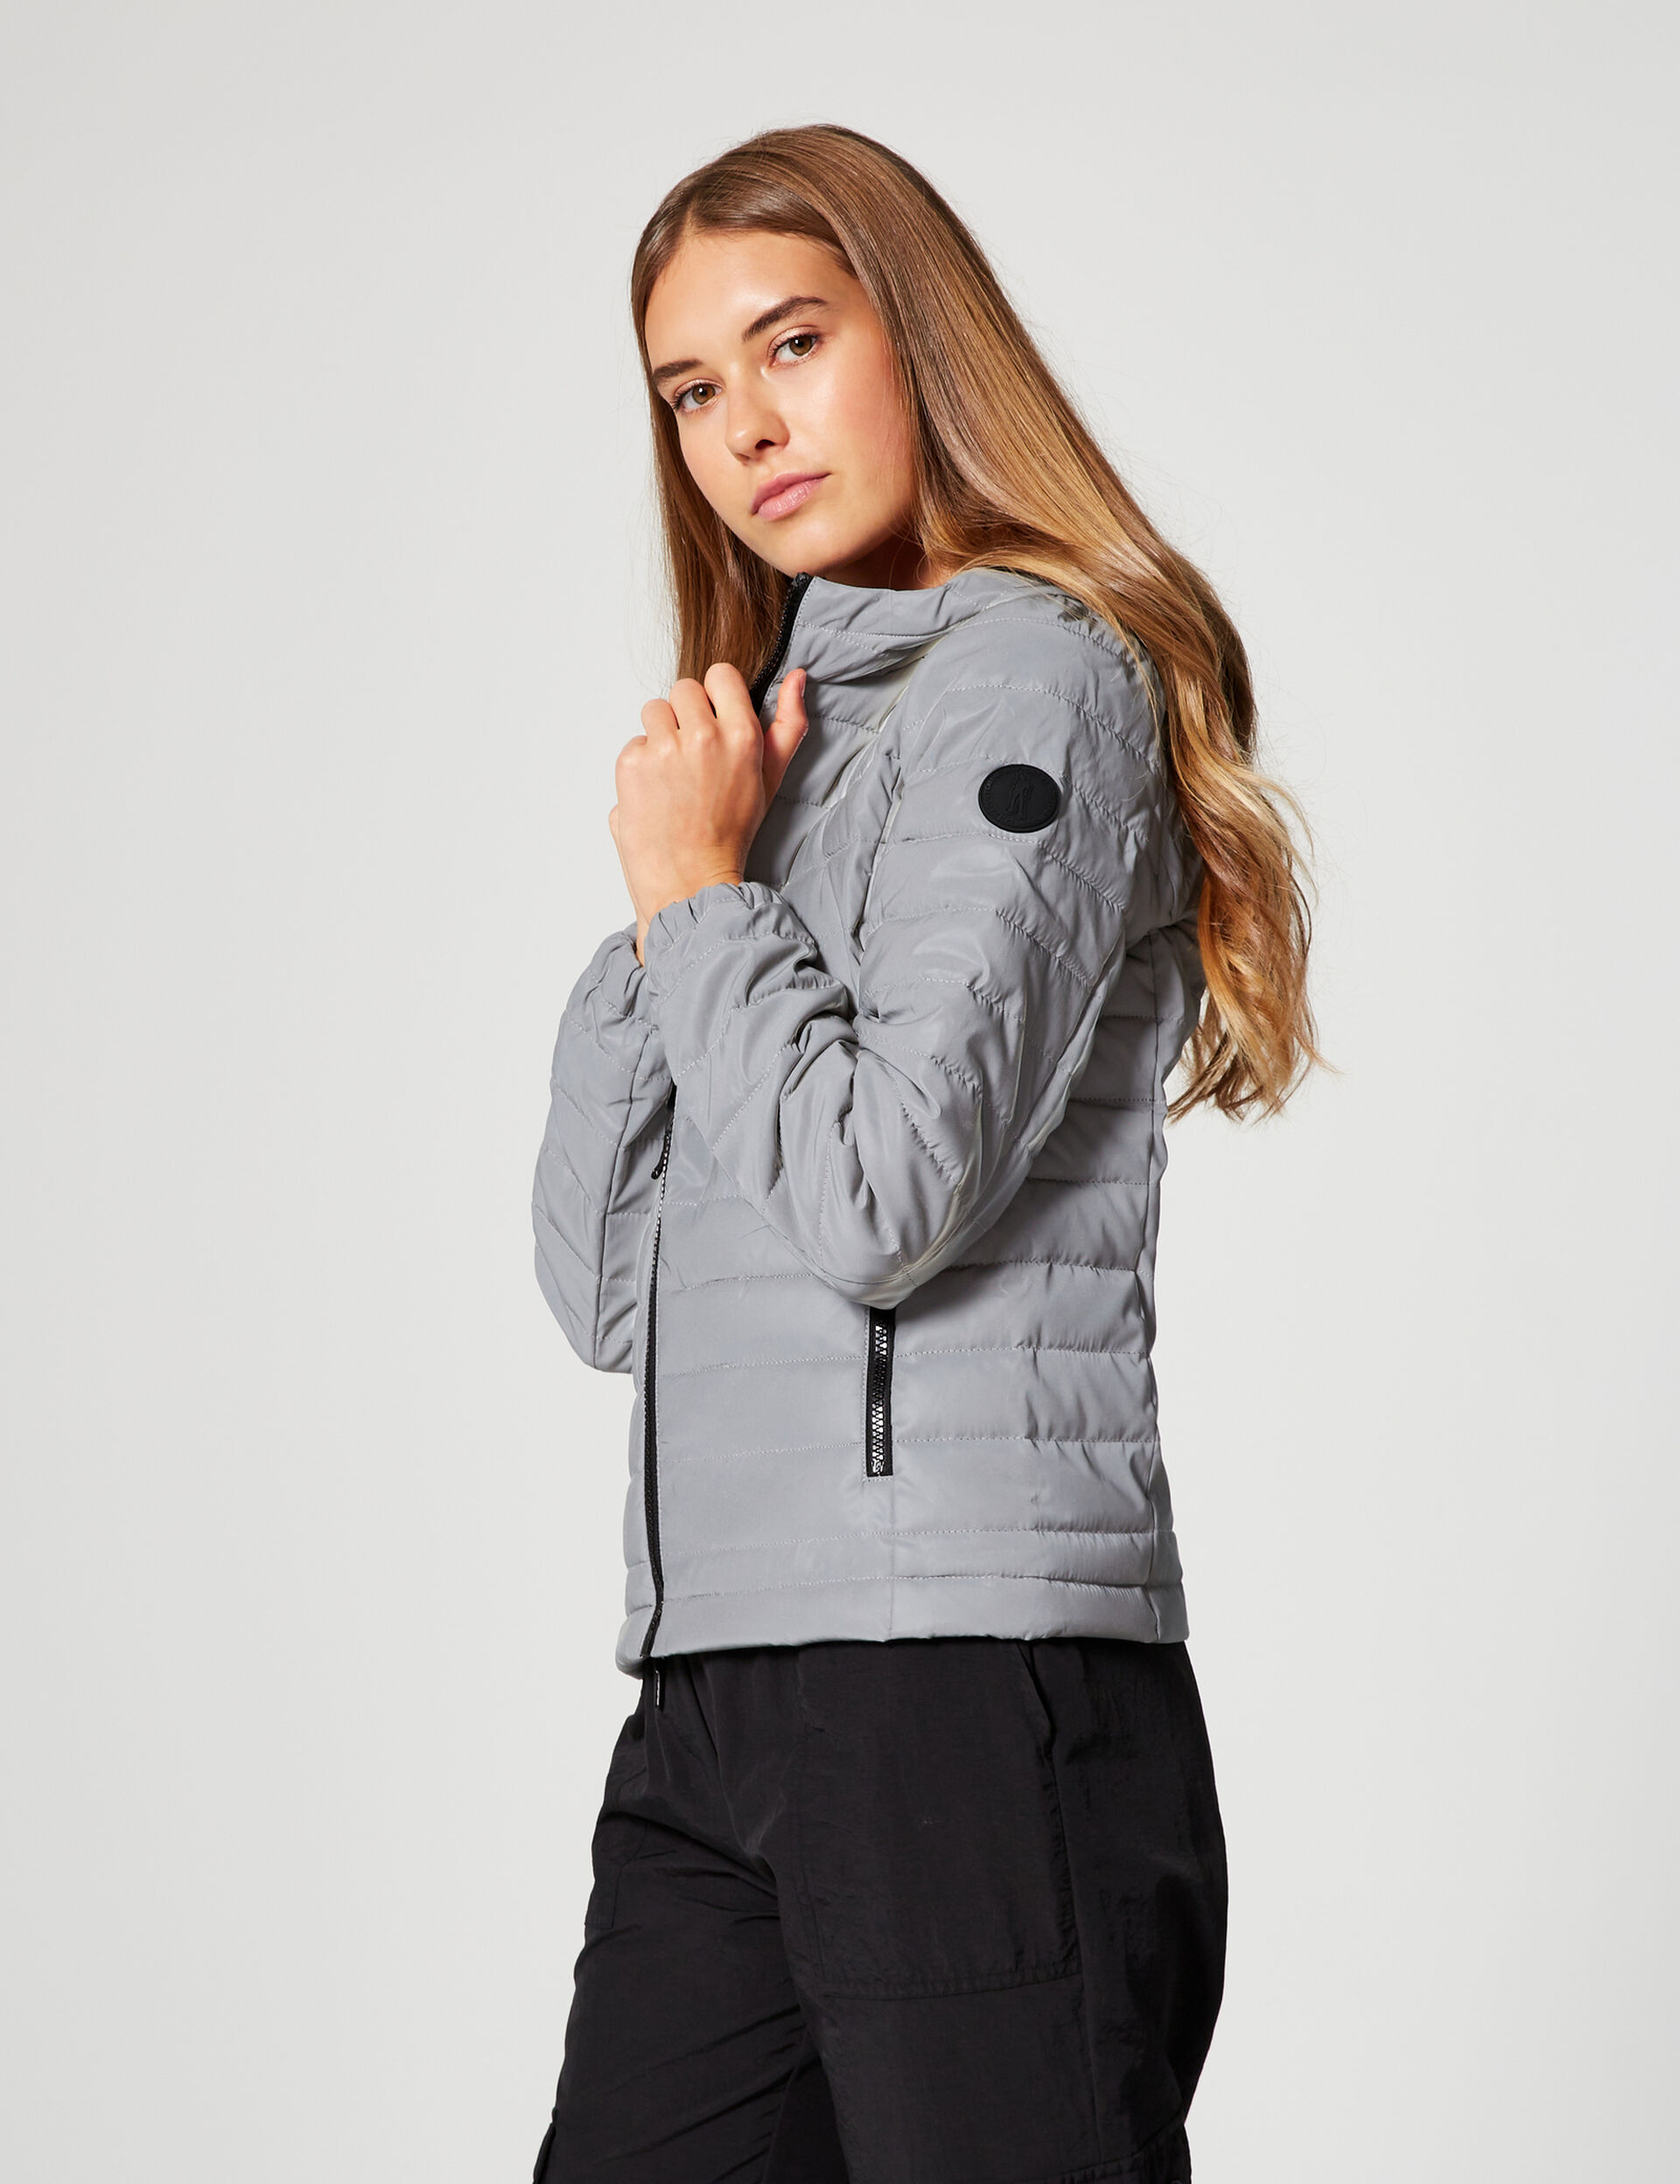 Lightweight padded jacket with reflective details